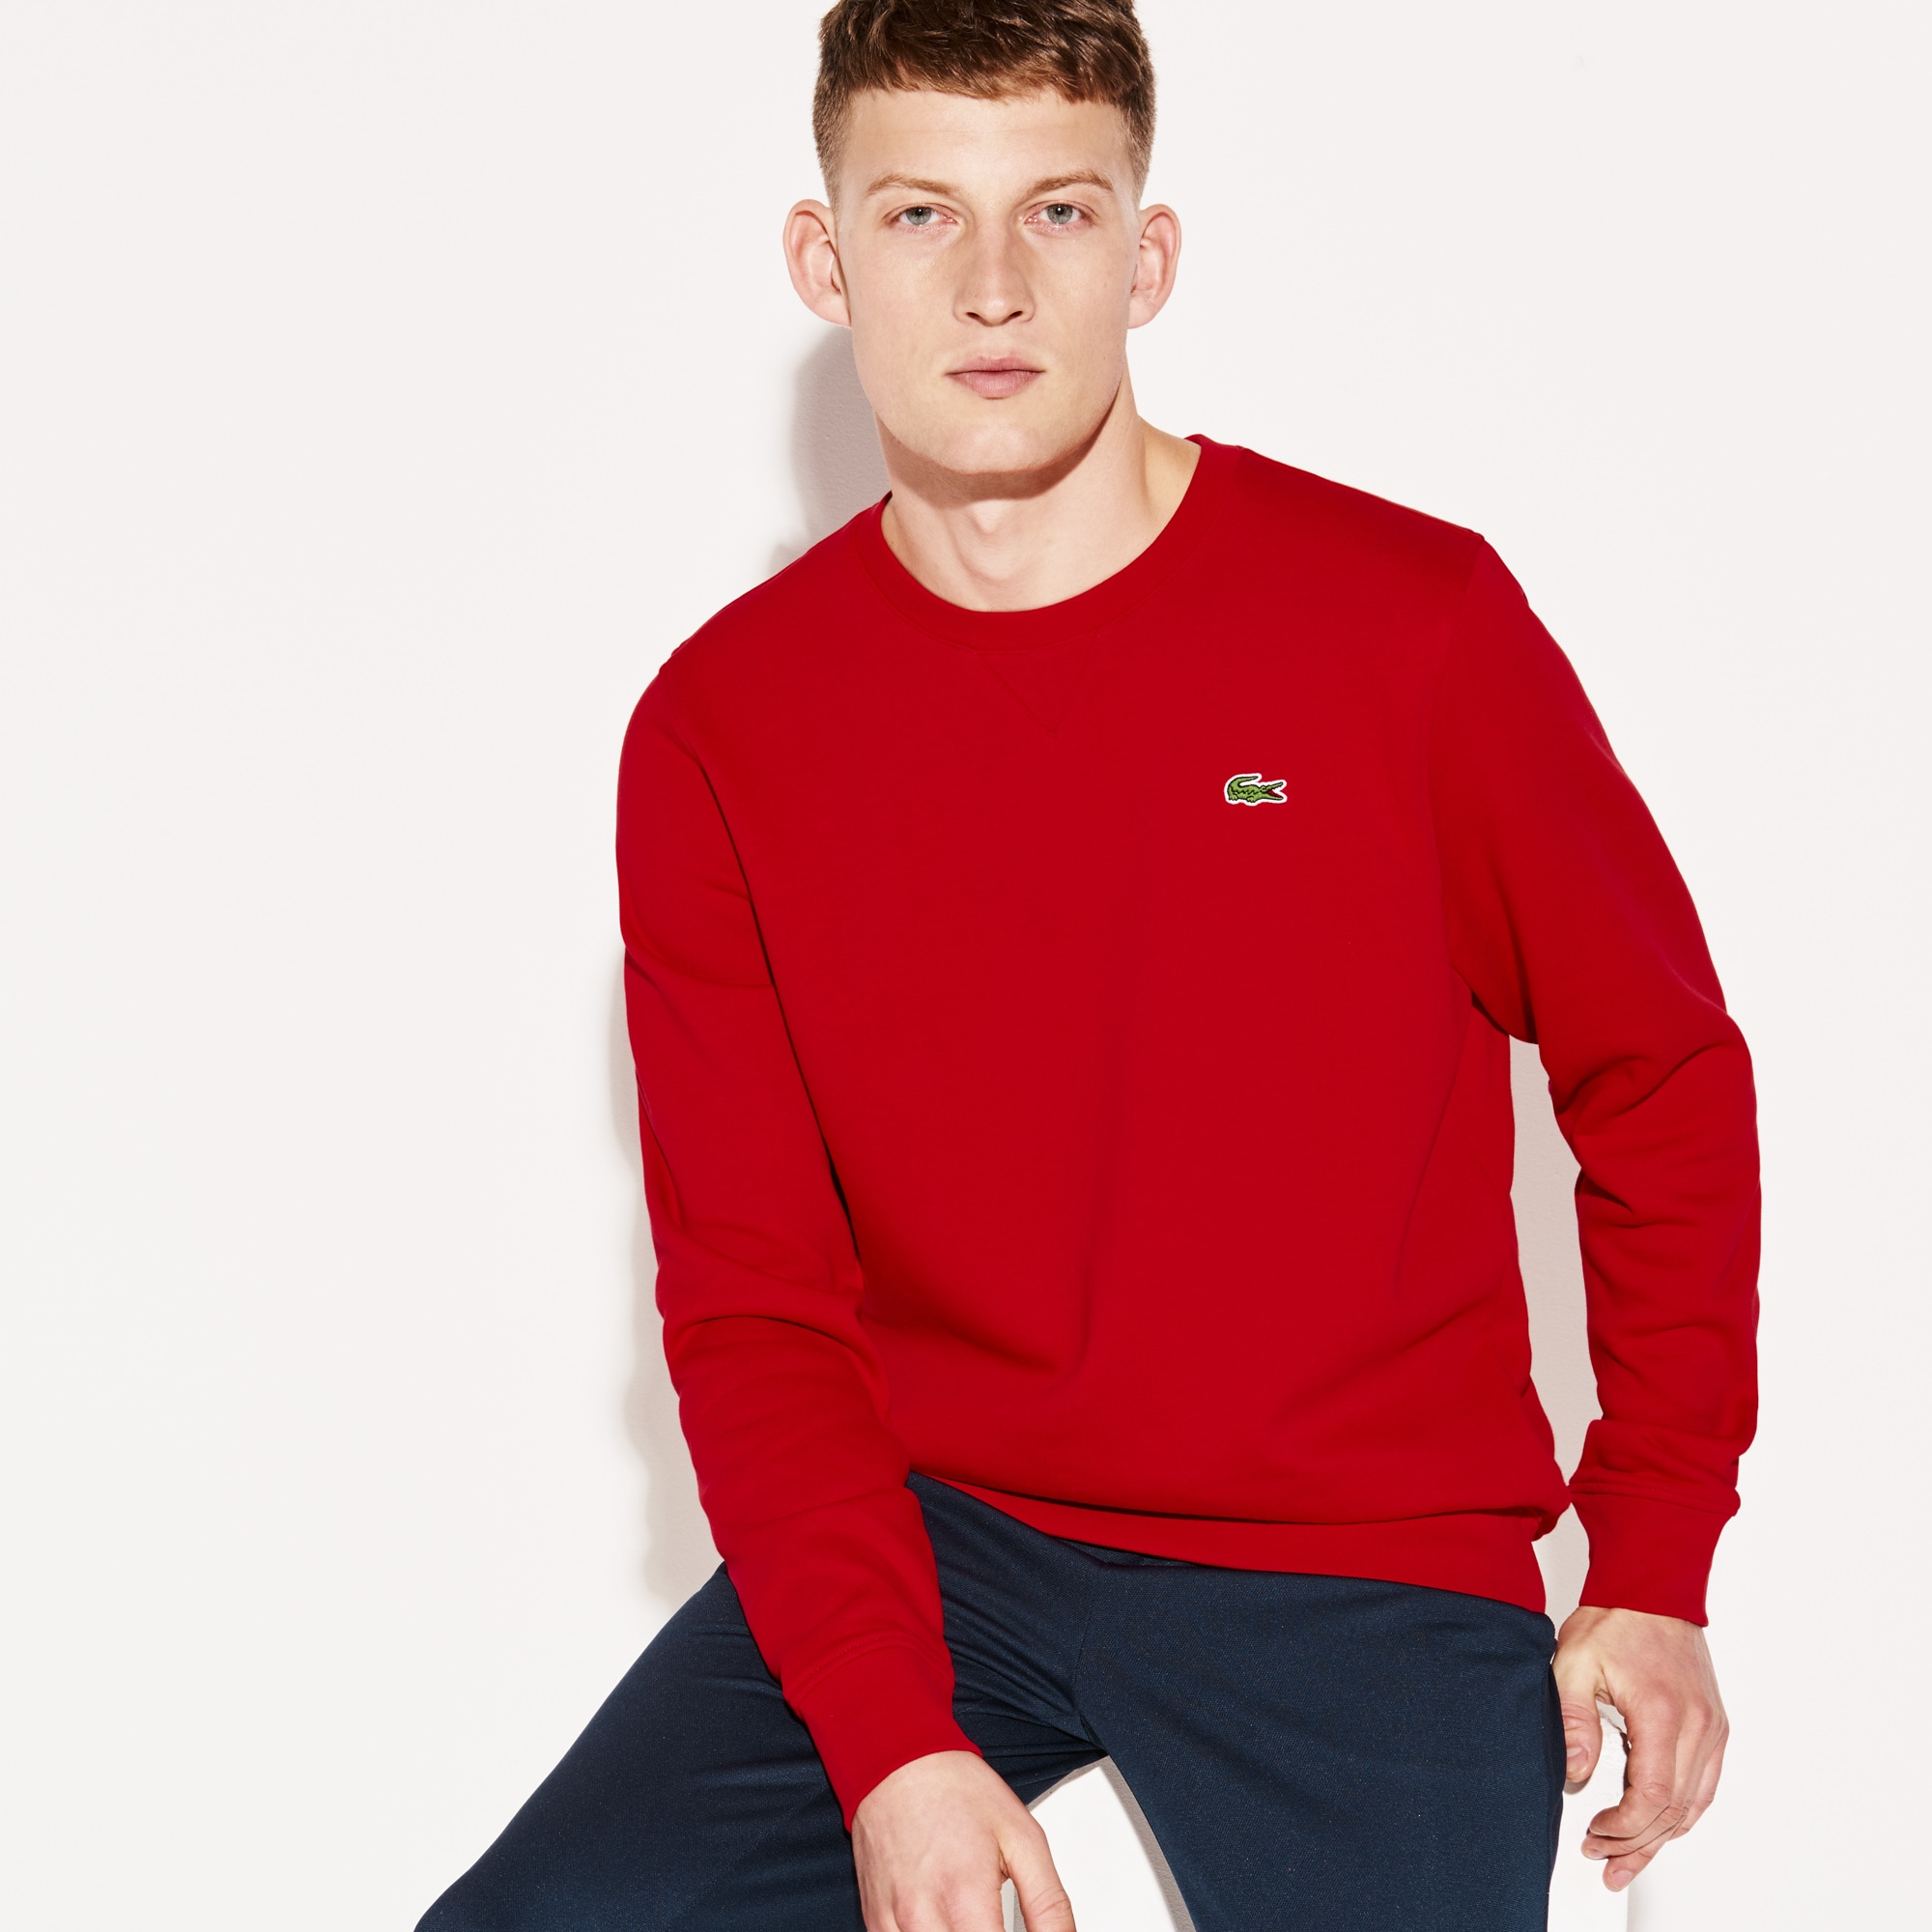 Men's  SPORT crew neck sweatshirt in solid fleece